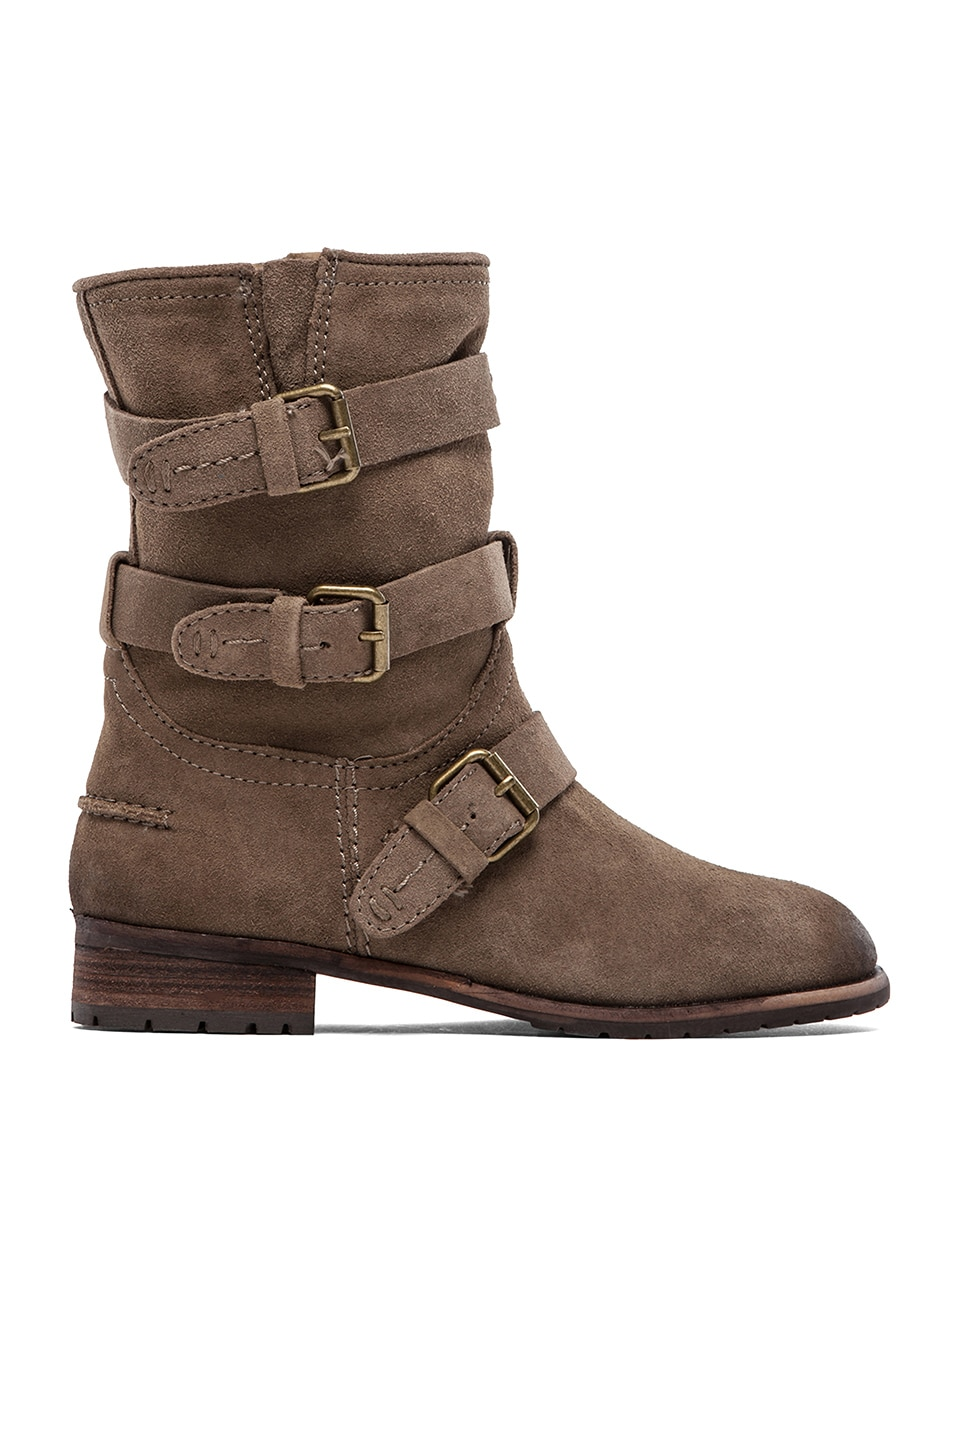 Dolce Vita Ferin Boot in Taupe